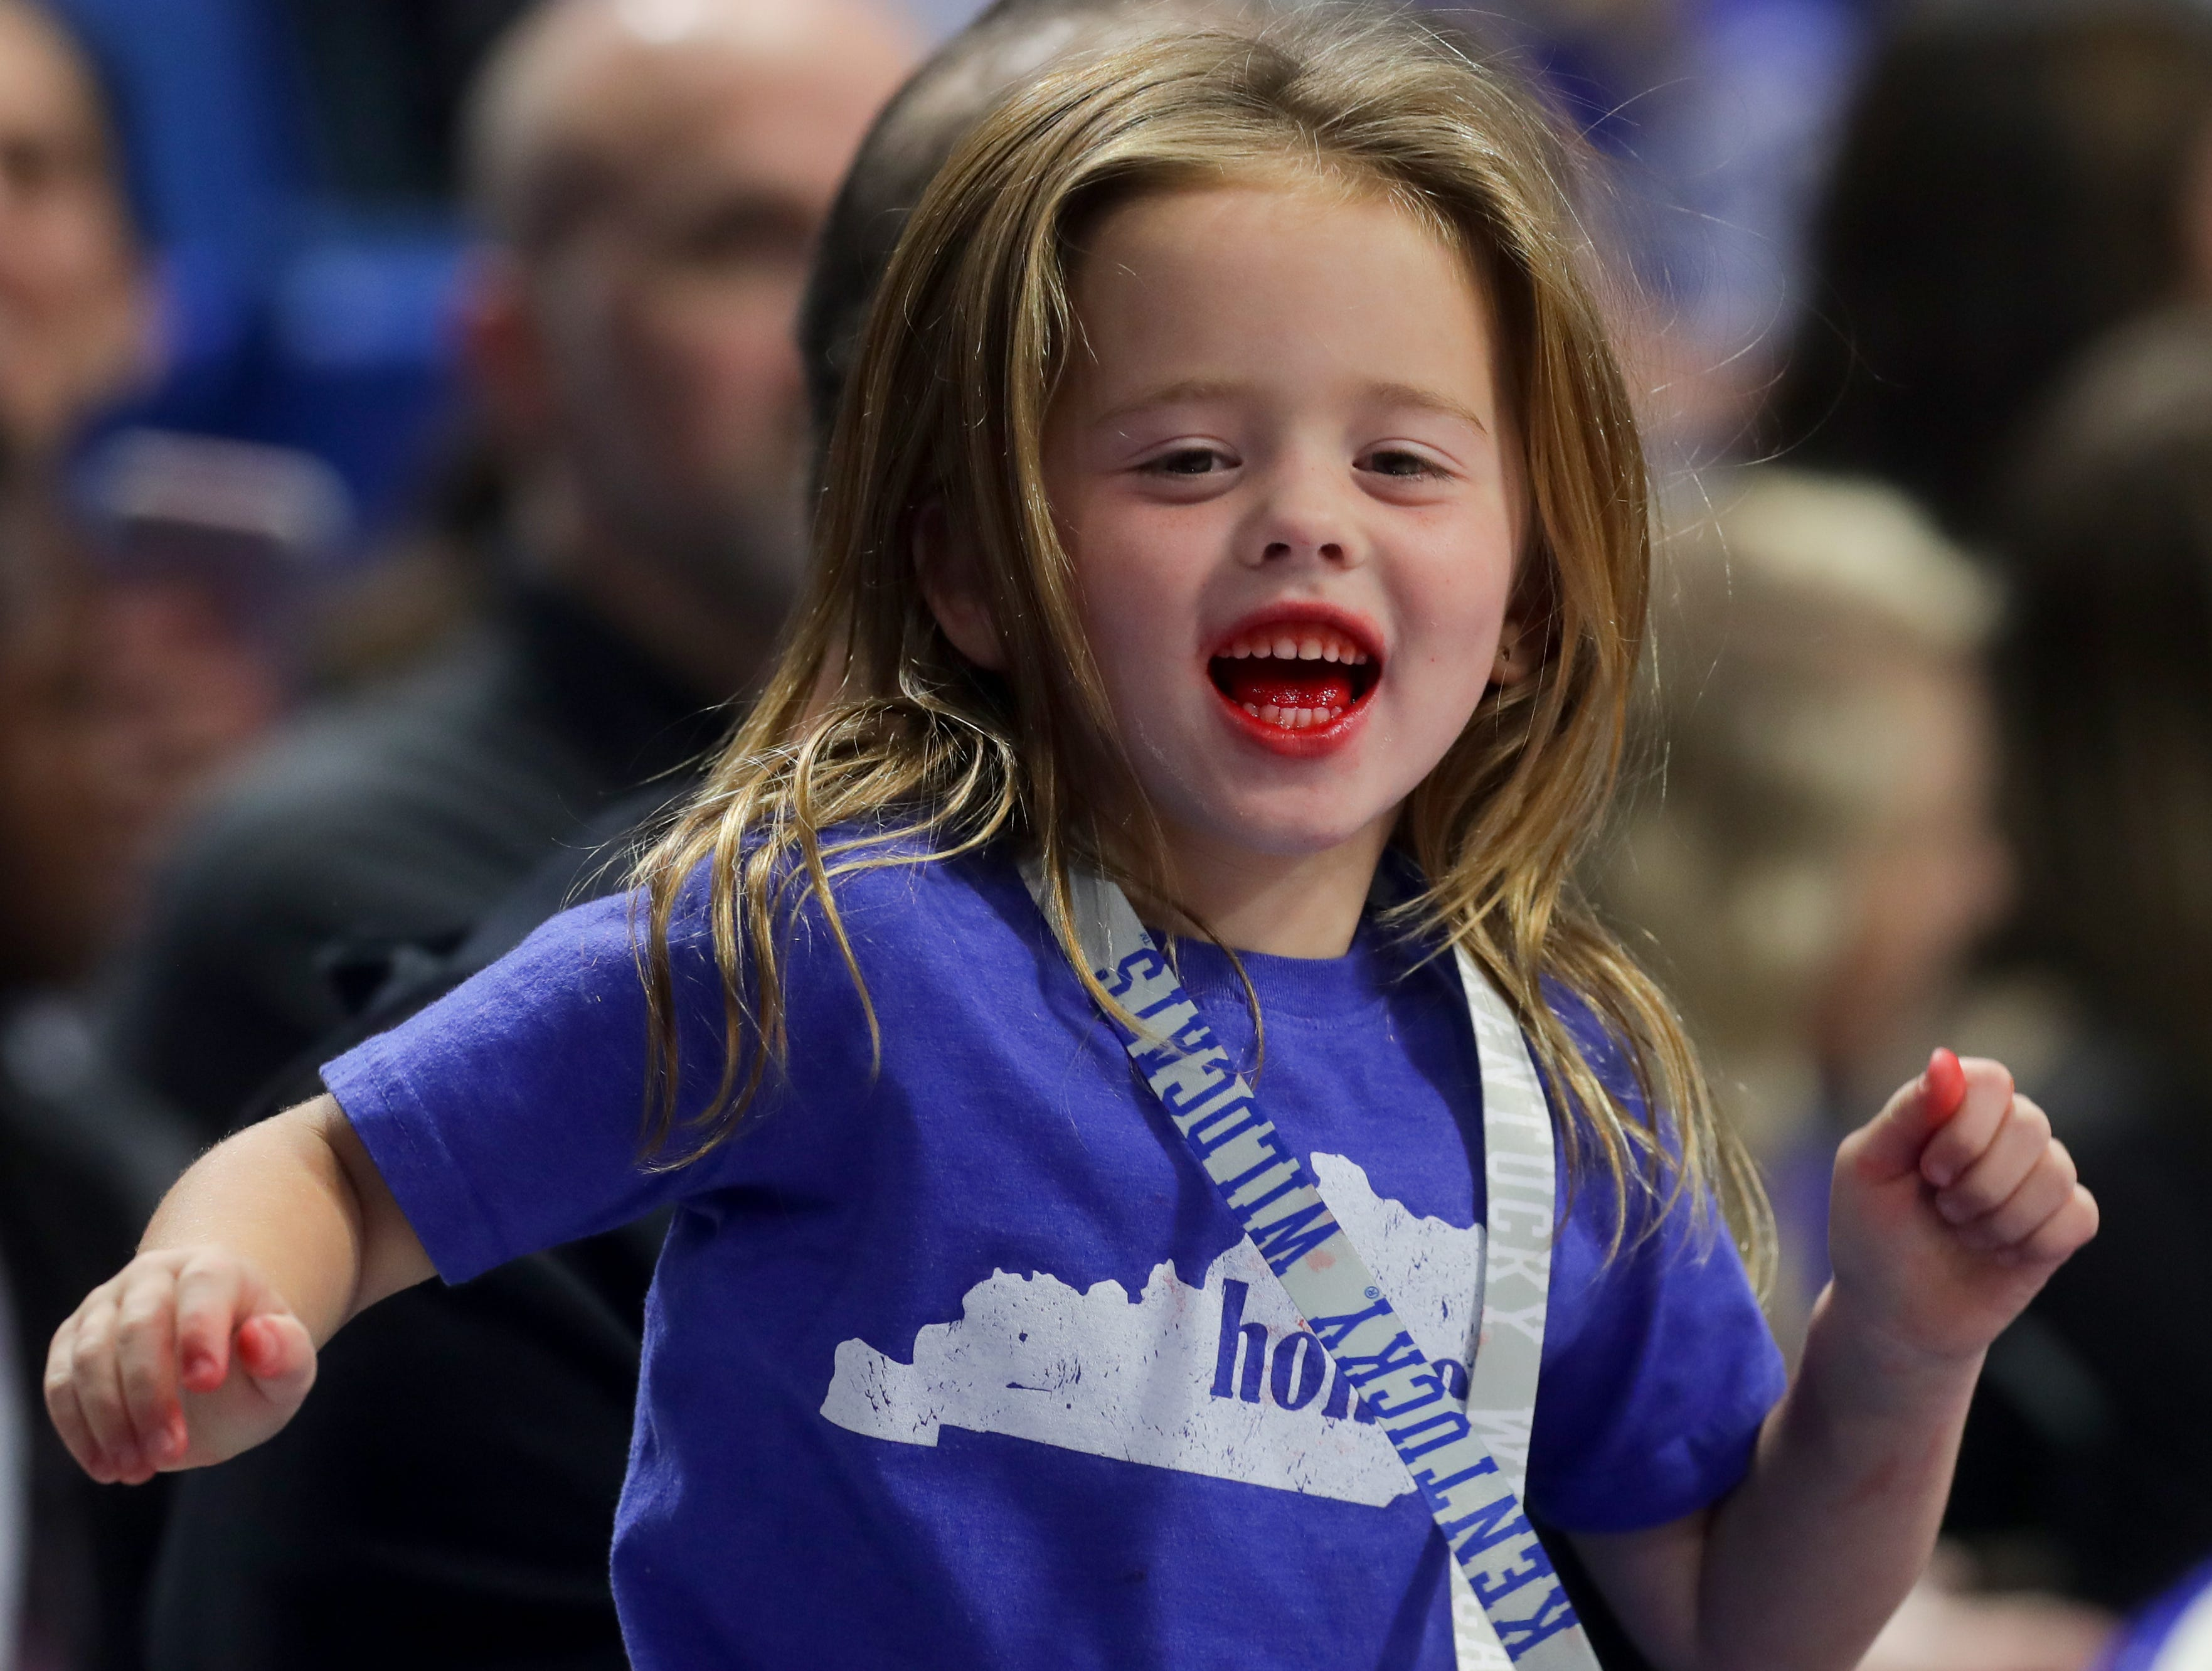 Matthew Mitchell's youngest, Presley Blue, cheered on the team at Big Blue Madness in Lexington, Kentucky.